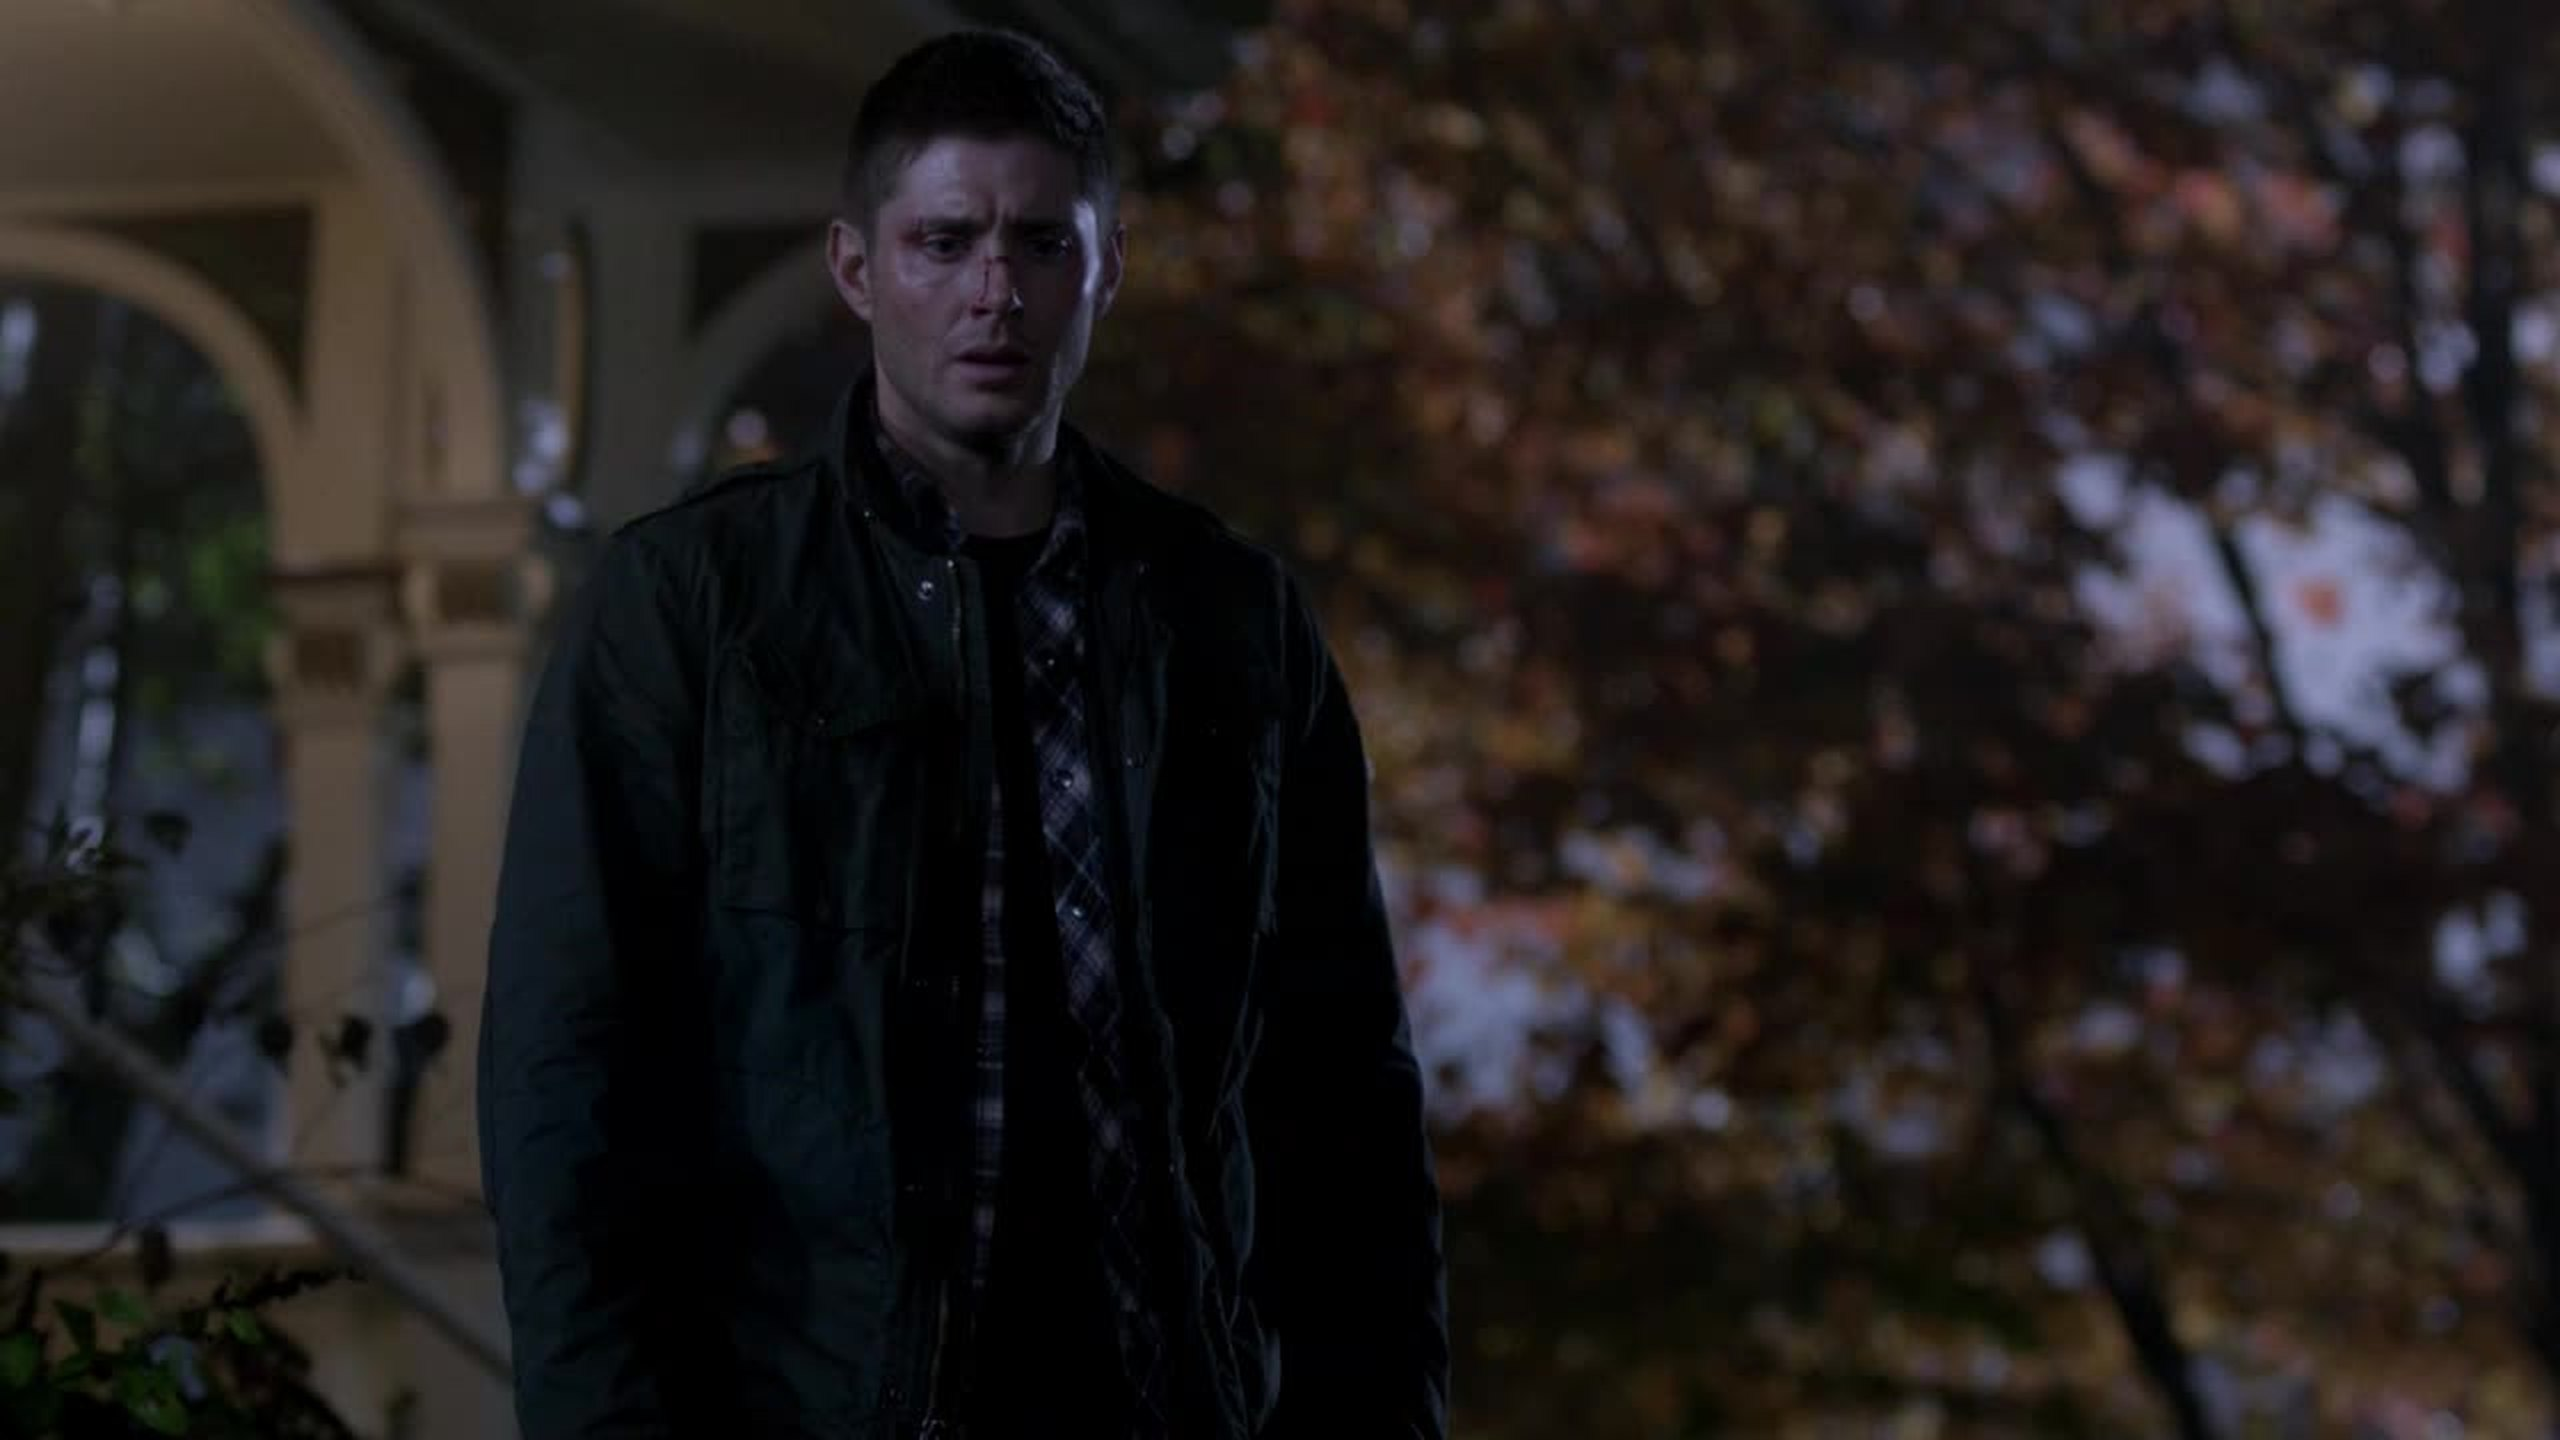 To see Dean all broken, and messed up .. is really heartbreaking! :(